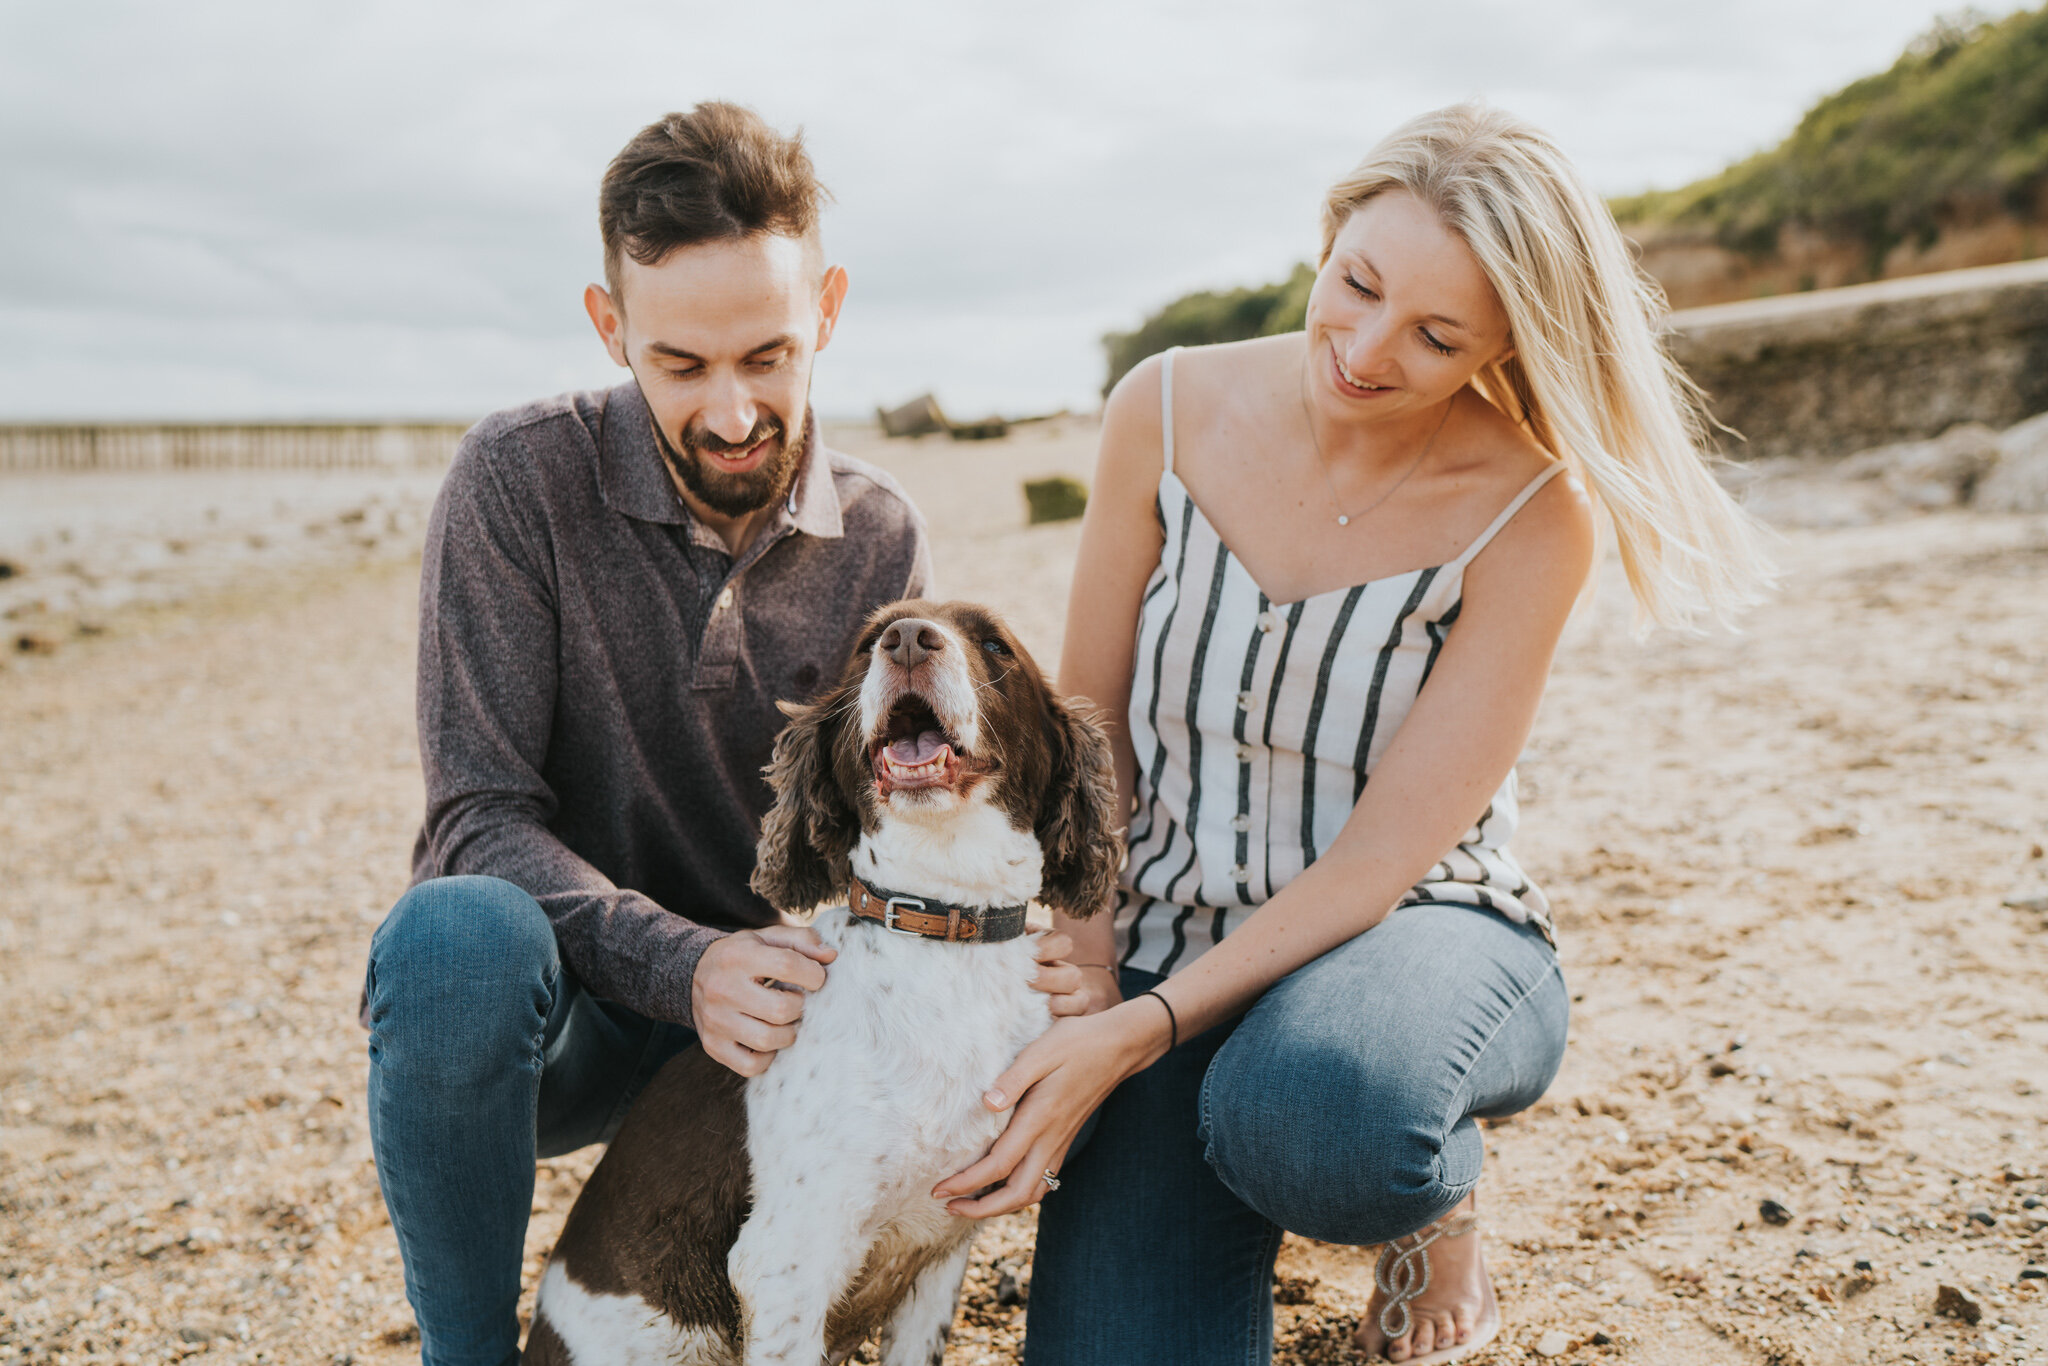 celebratory-beach-family-session-thomson-family-cudmore-grove-east-mersea-grace-elizabeth-colchester-essex-devon-suffolk-and-norfolk-alternative-wedding-and-family-photographer (38 of 53).jpg